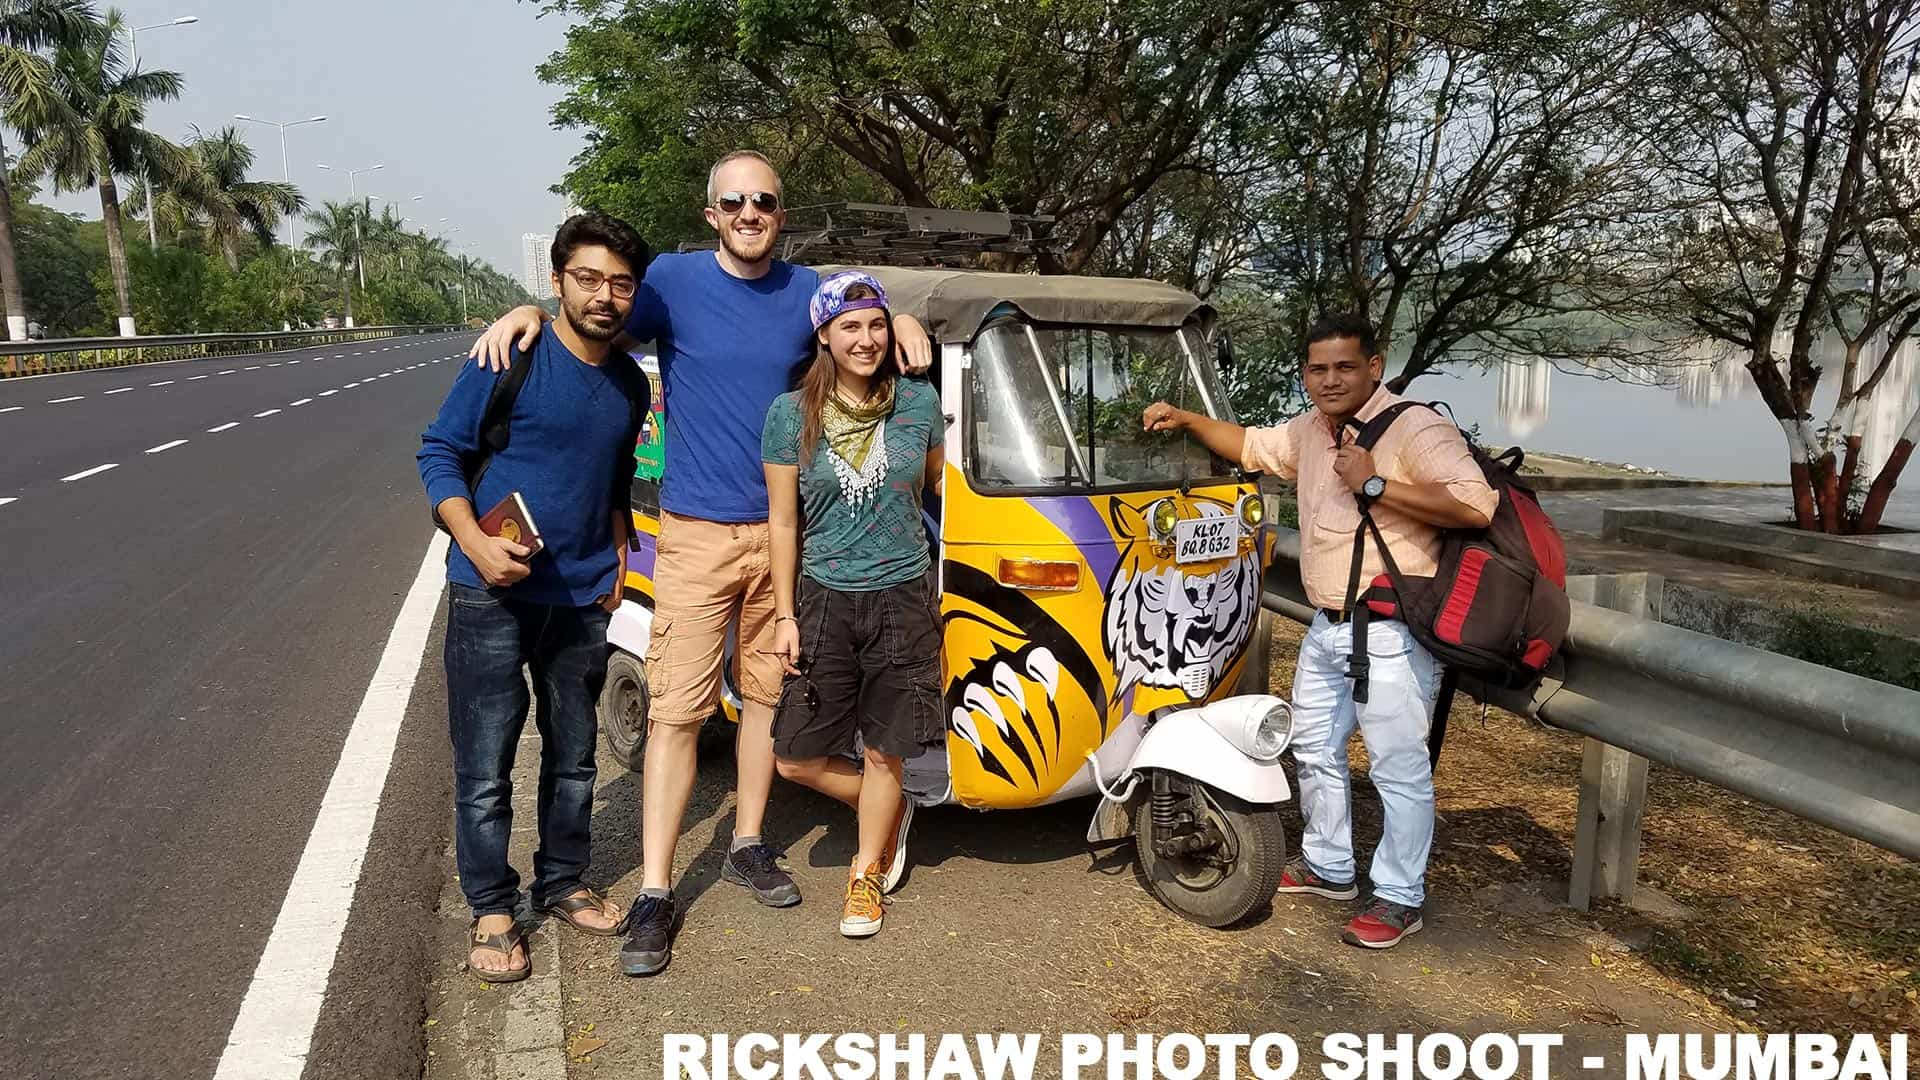 Rickshaw Run Photo Shoot in Mumbai